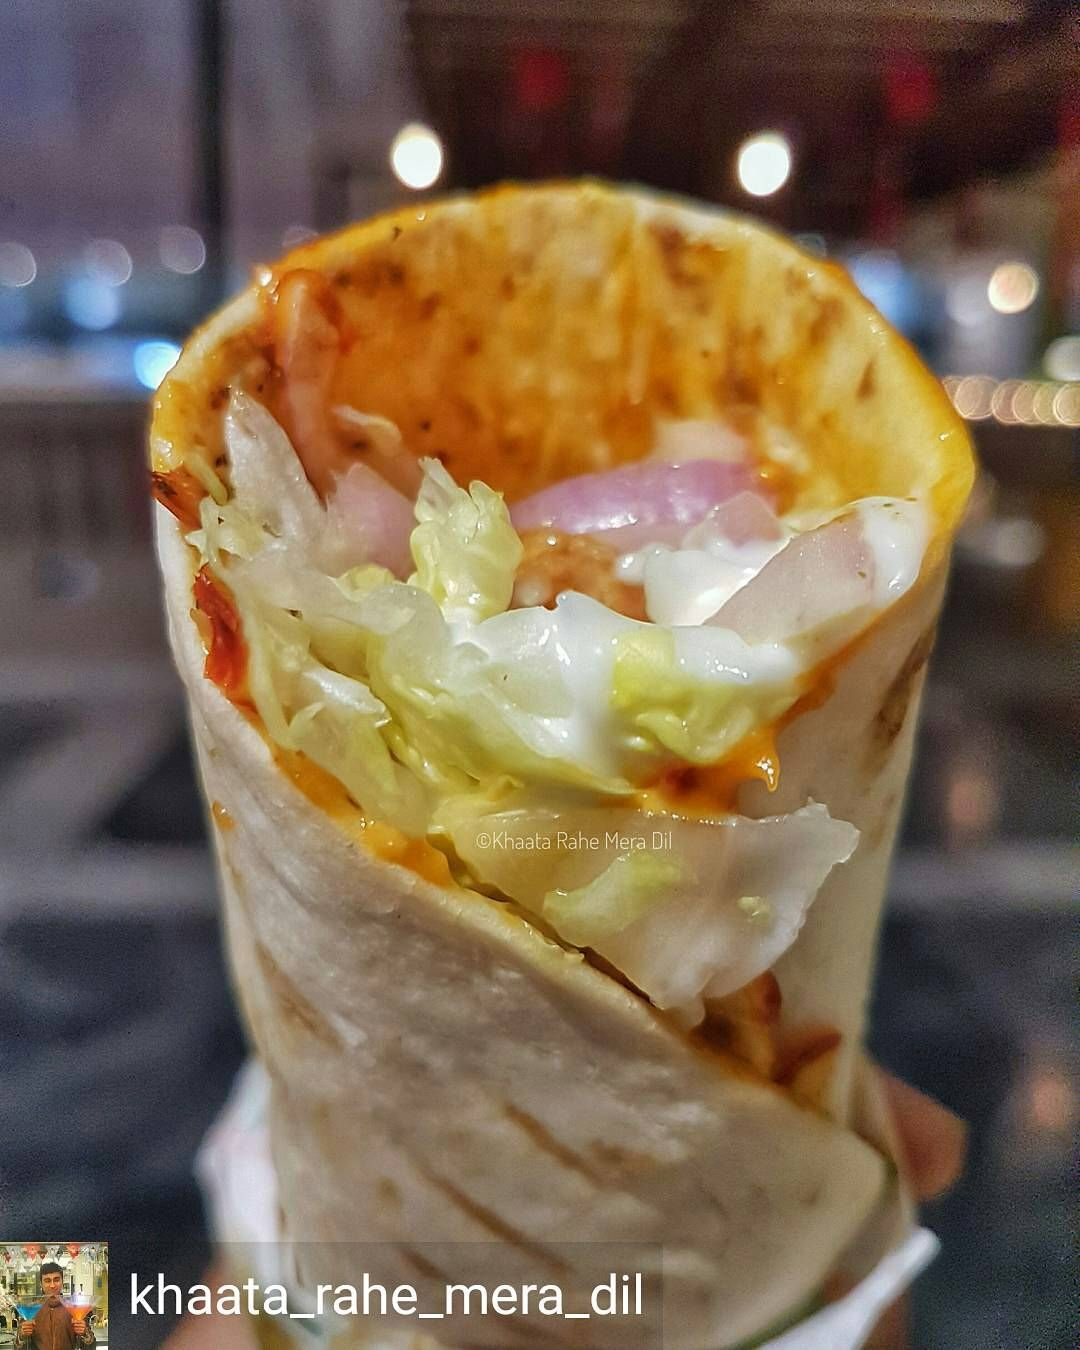 Via @khaata_rahe_mera_dil -  Had a very satisfying Paneer Pita Roll with a little mayo diced paneer & some veggies for breakfast!  . . . . #foodtalkindia #foodoftheday #Like4like #f52grams #l4l #vegetarian #picoftheday #tagsforlikes #food #likesforlikes #nomnom #beautiful #lovefood #indianfood #foodpics #dailyfoodfeed #f4f #delicious #eeeeeats #followme #instafood #follow4follow #yummy #foodblogger #foodgasm #foodie #indian #foodphotography #foodporn #foodstagram